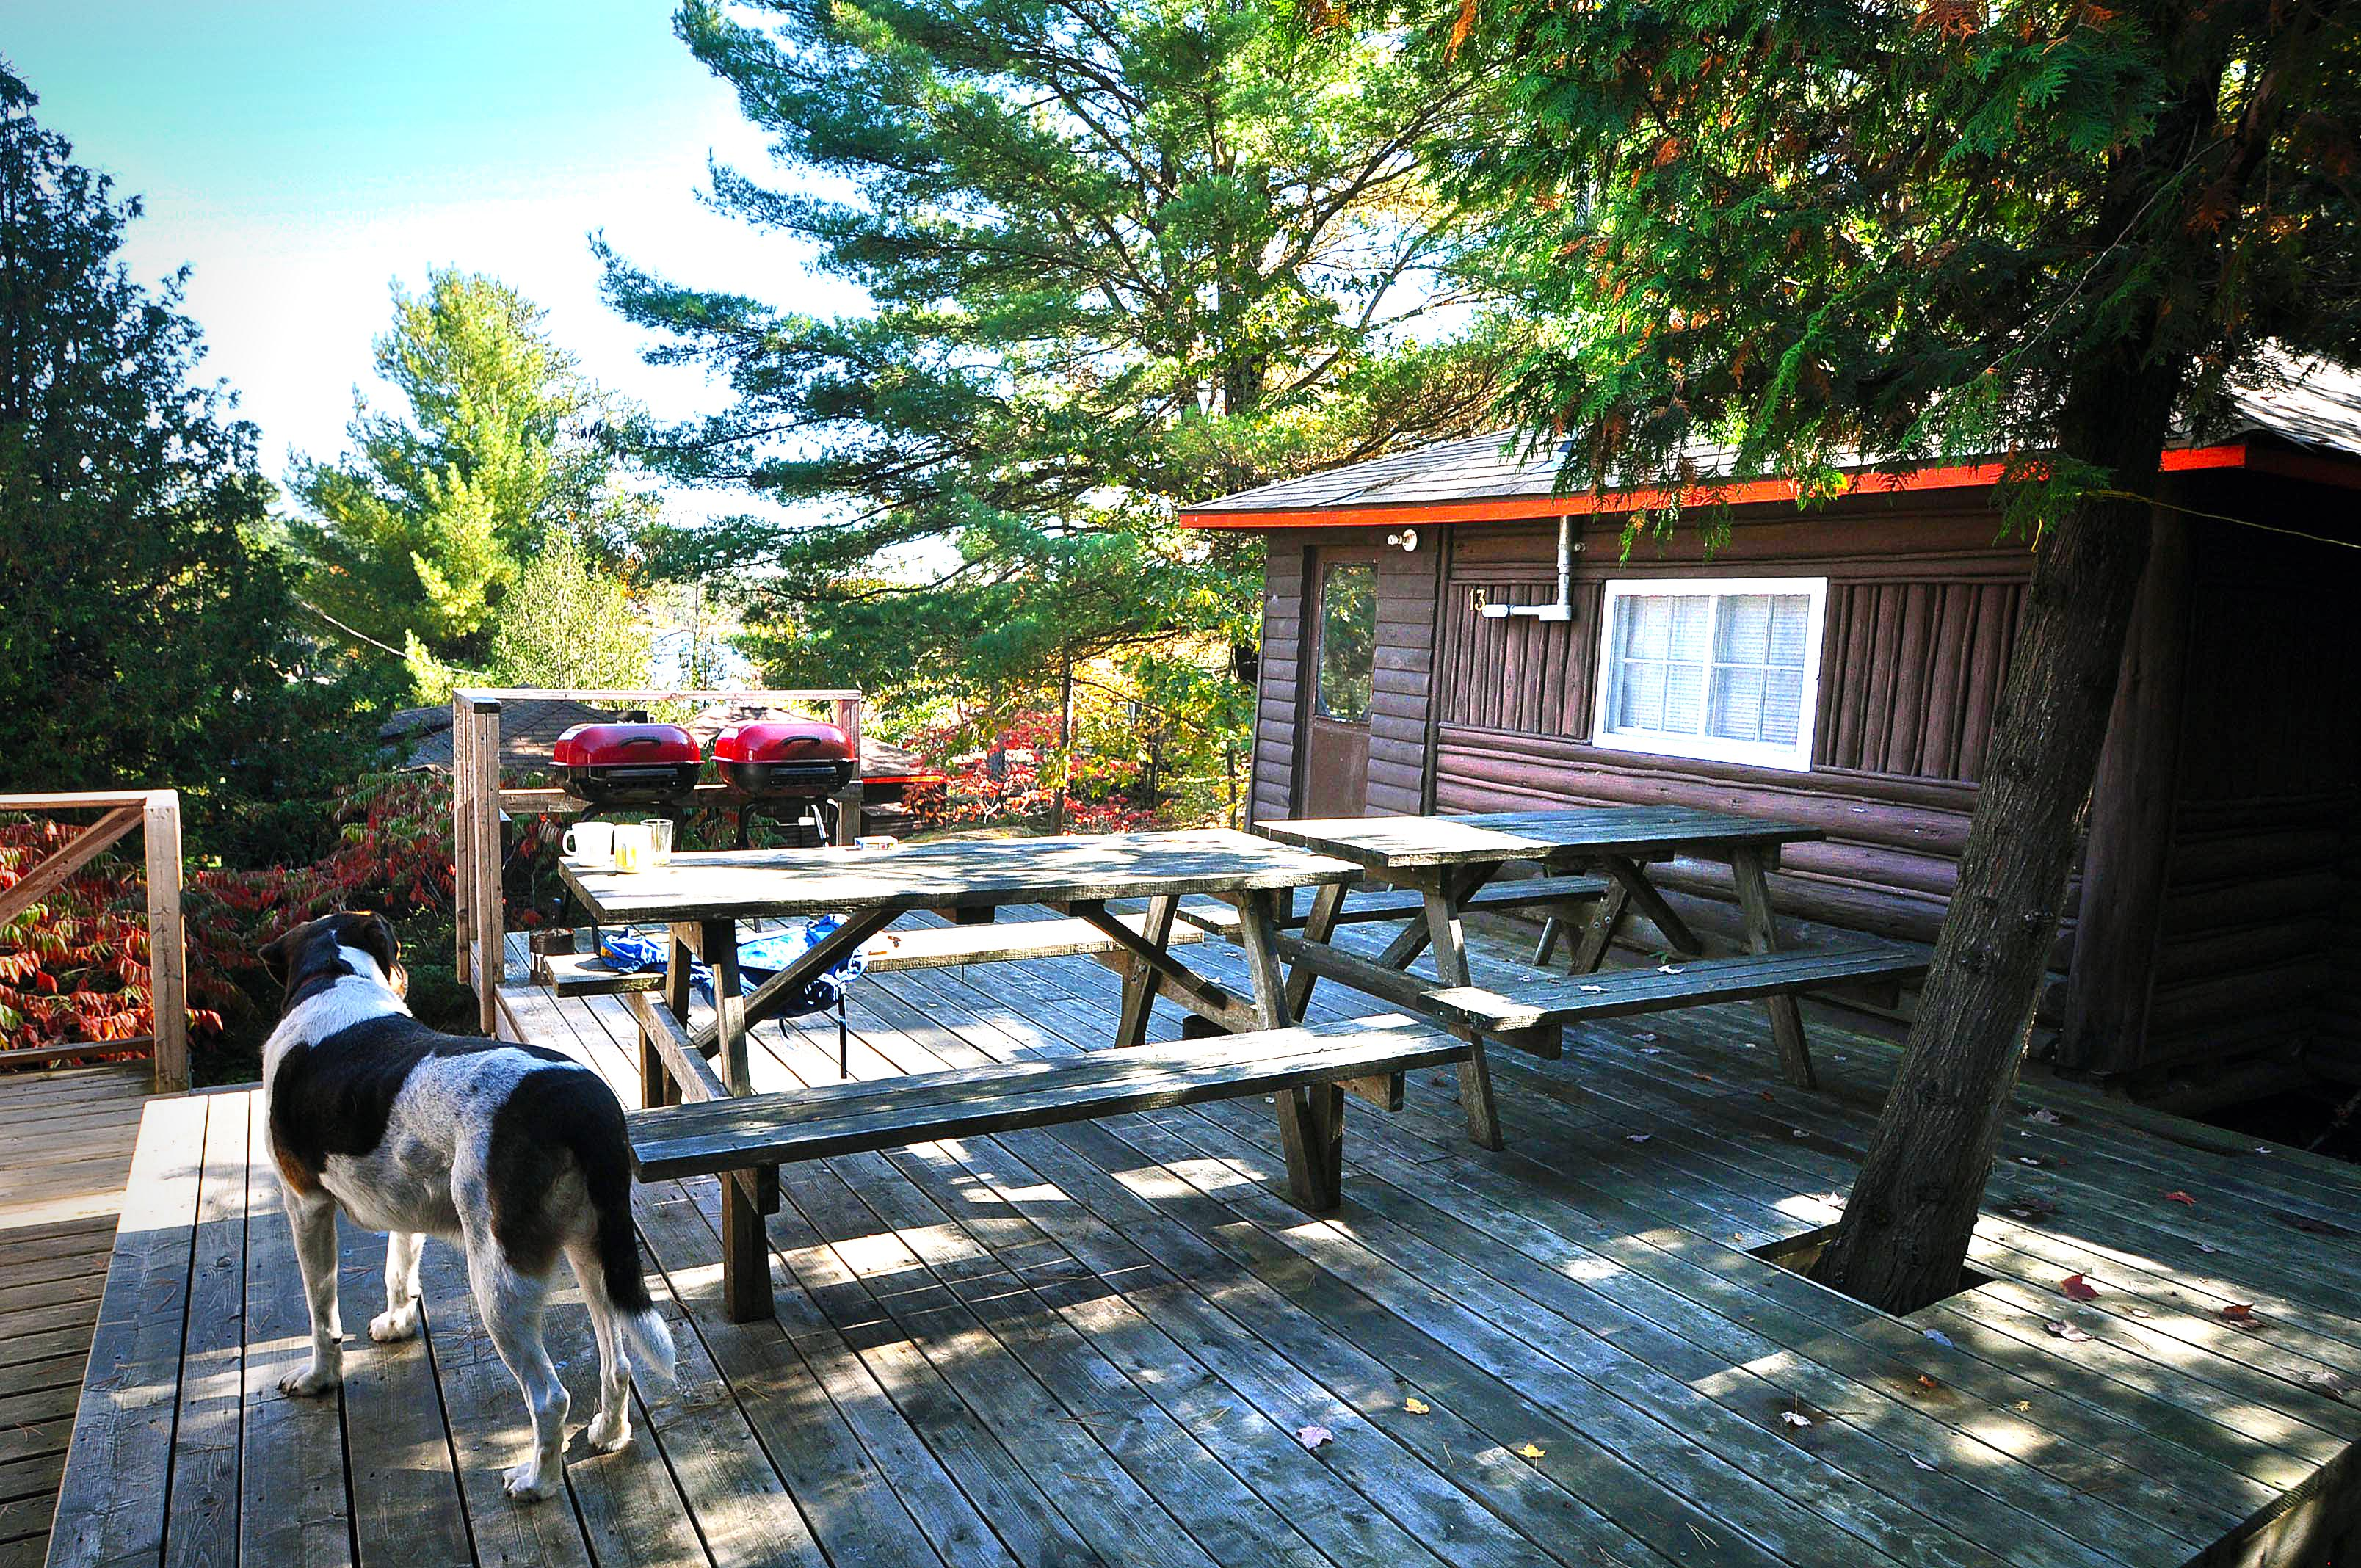 Cabin 13 - deck, two picnic tables and a dog.